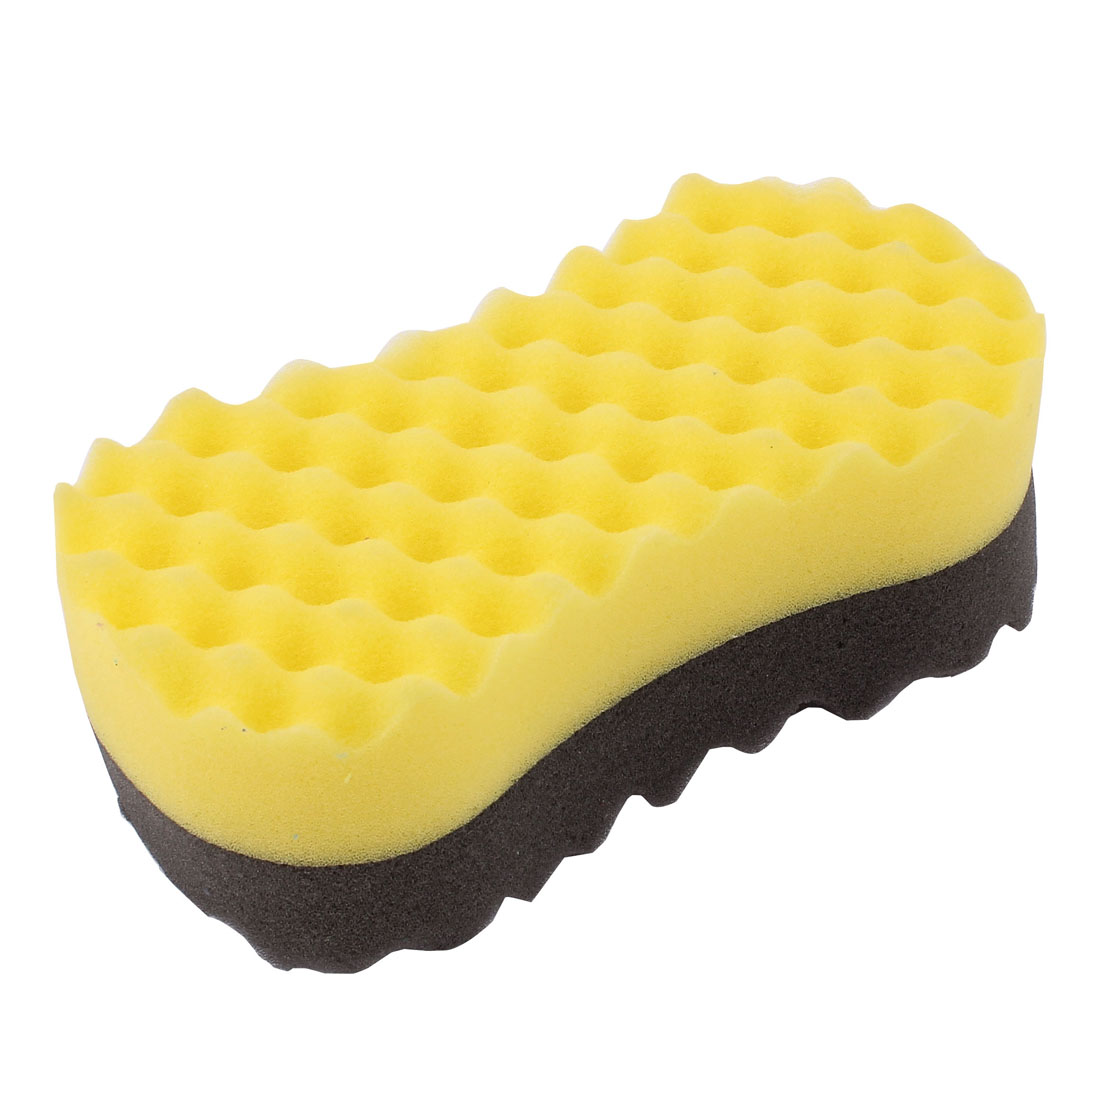 Car Auto Yellow Gray Bone Shaped Wavy Sponge Washing Cleaning Pad Block